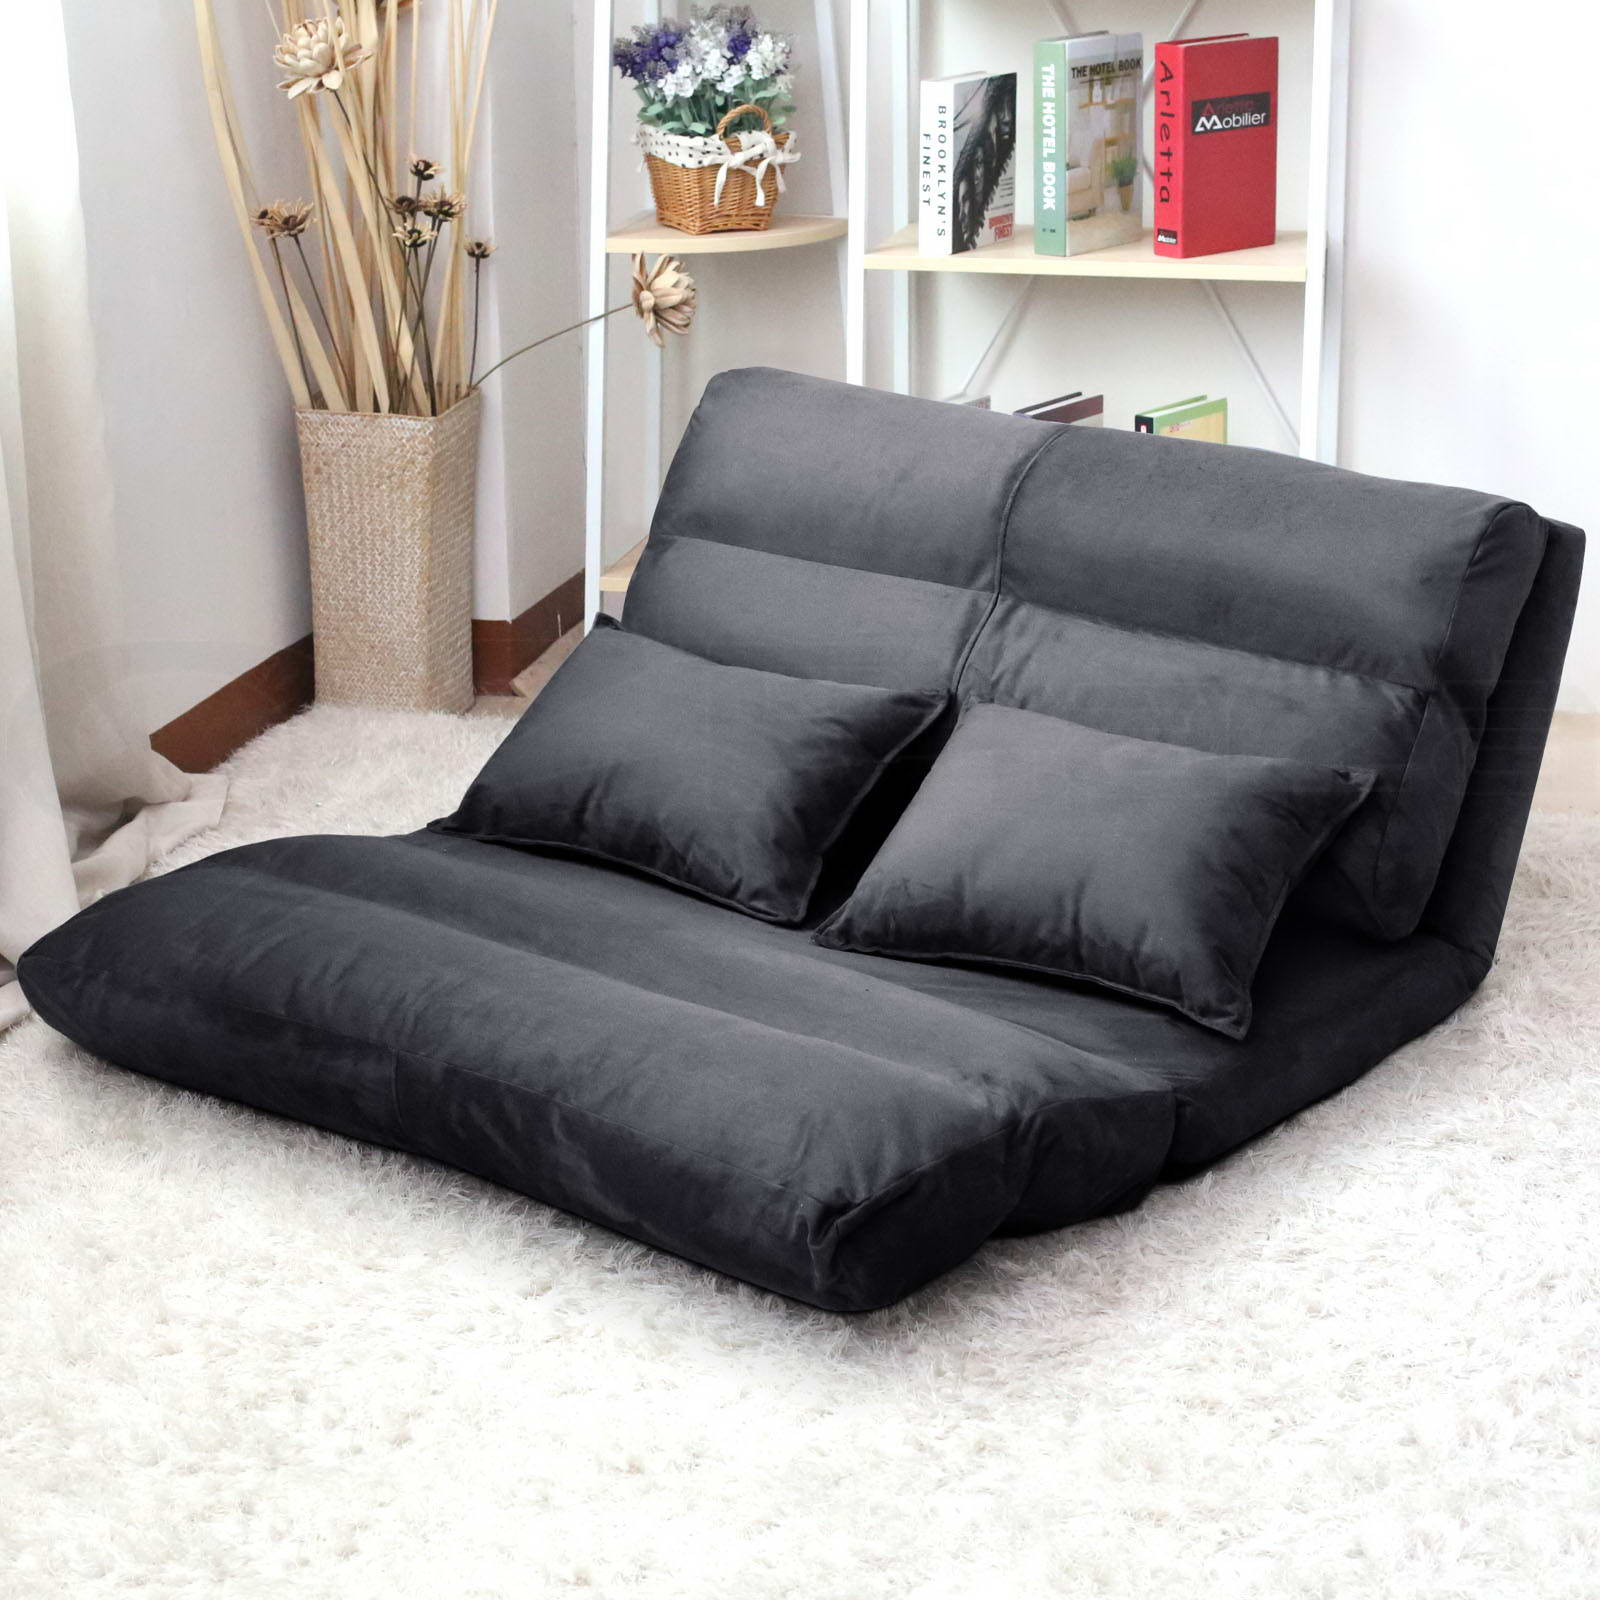 Lounge sofa  Lounge Sofa Bed DOUBLE SIZE Floor Recliner Folding Chaise Chair ...